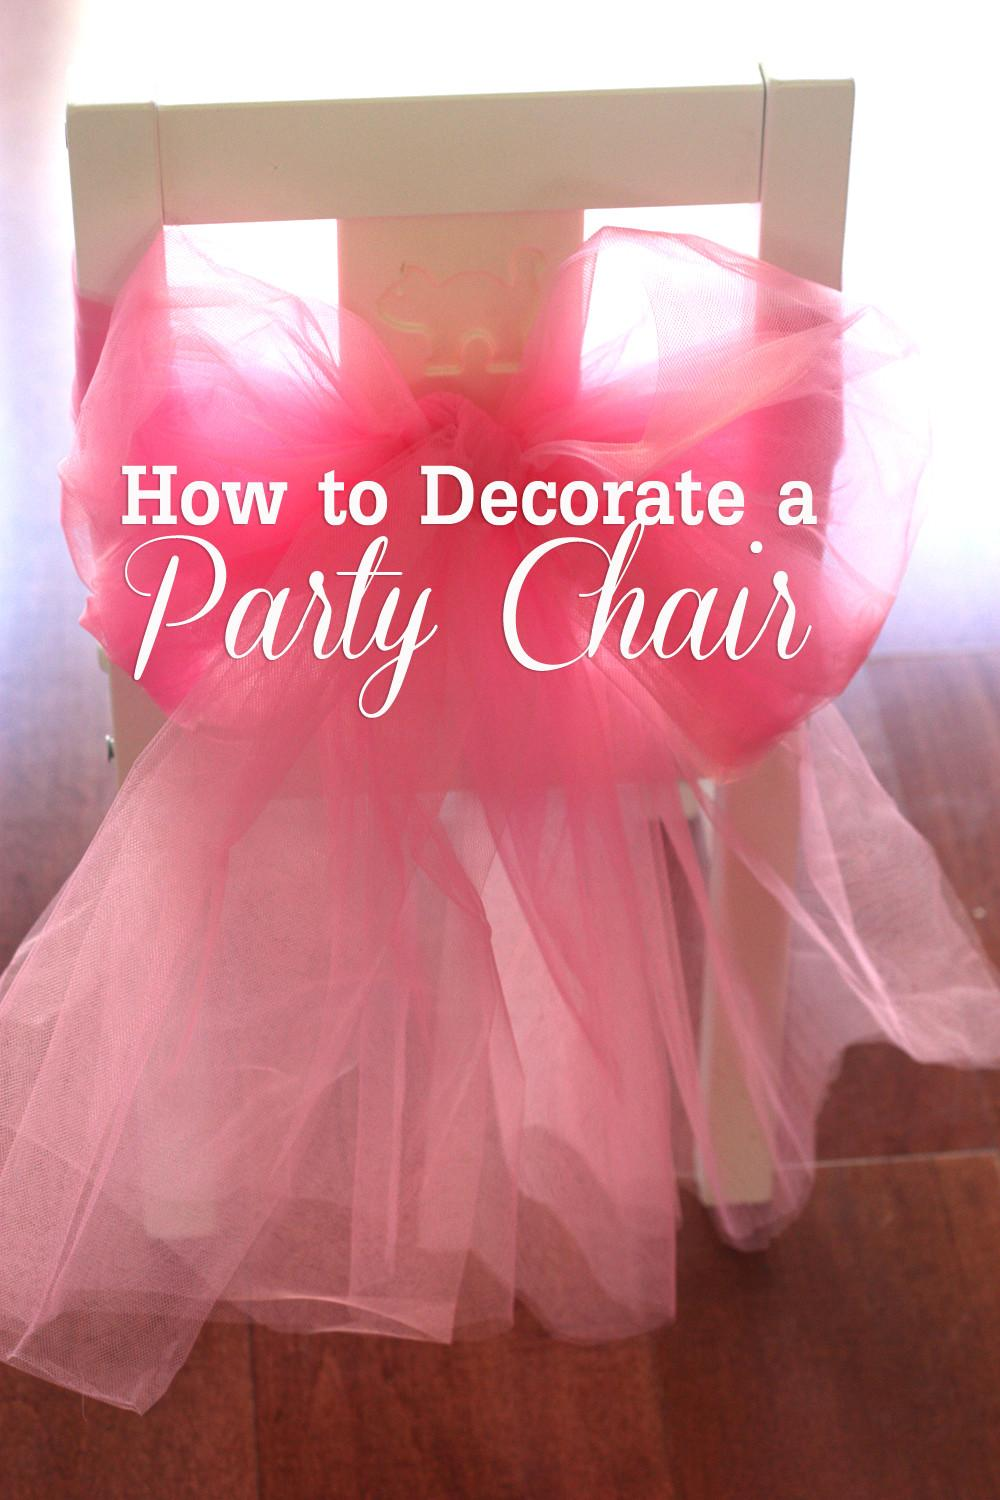 Diy Decorate Princess Party Chair Catch